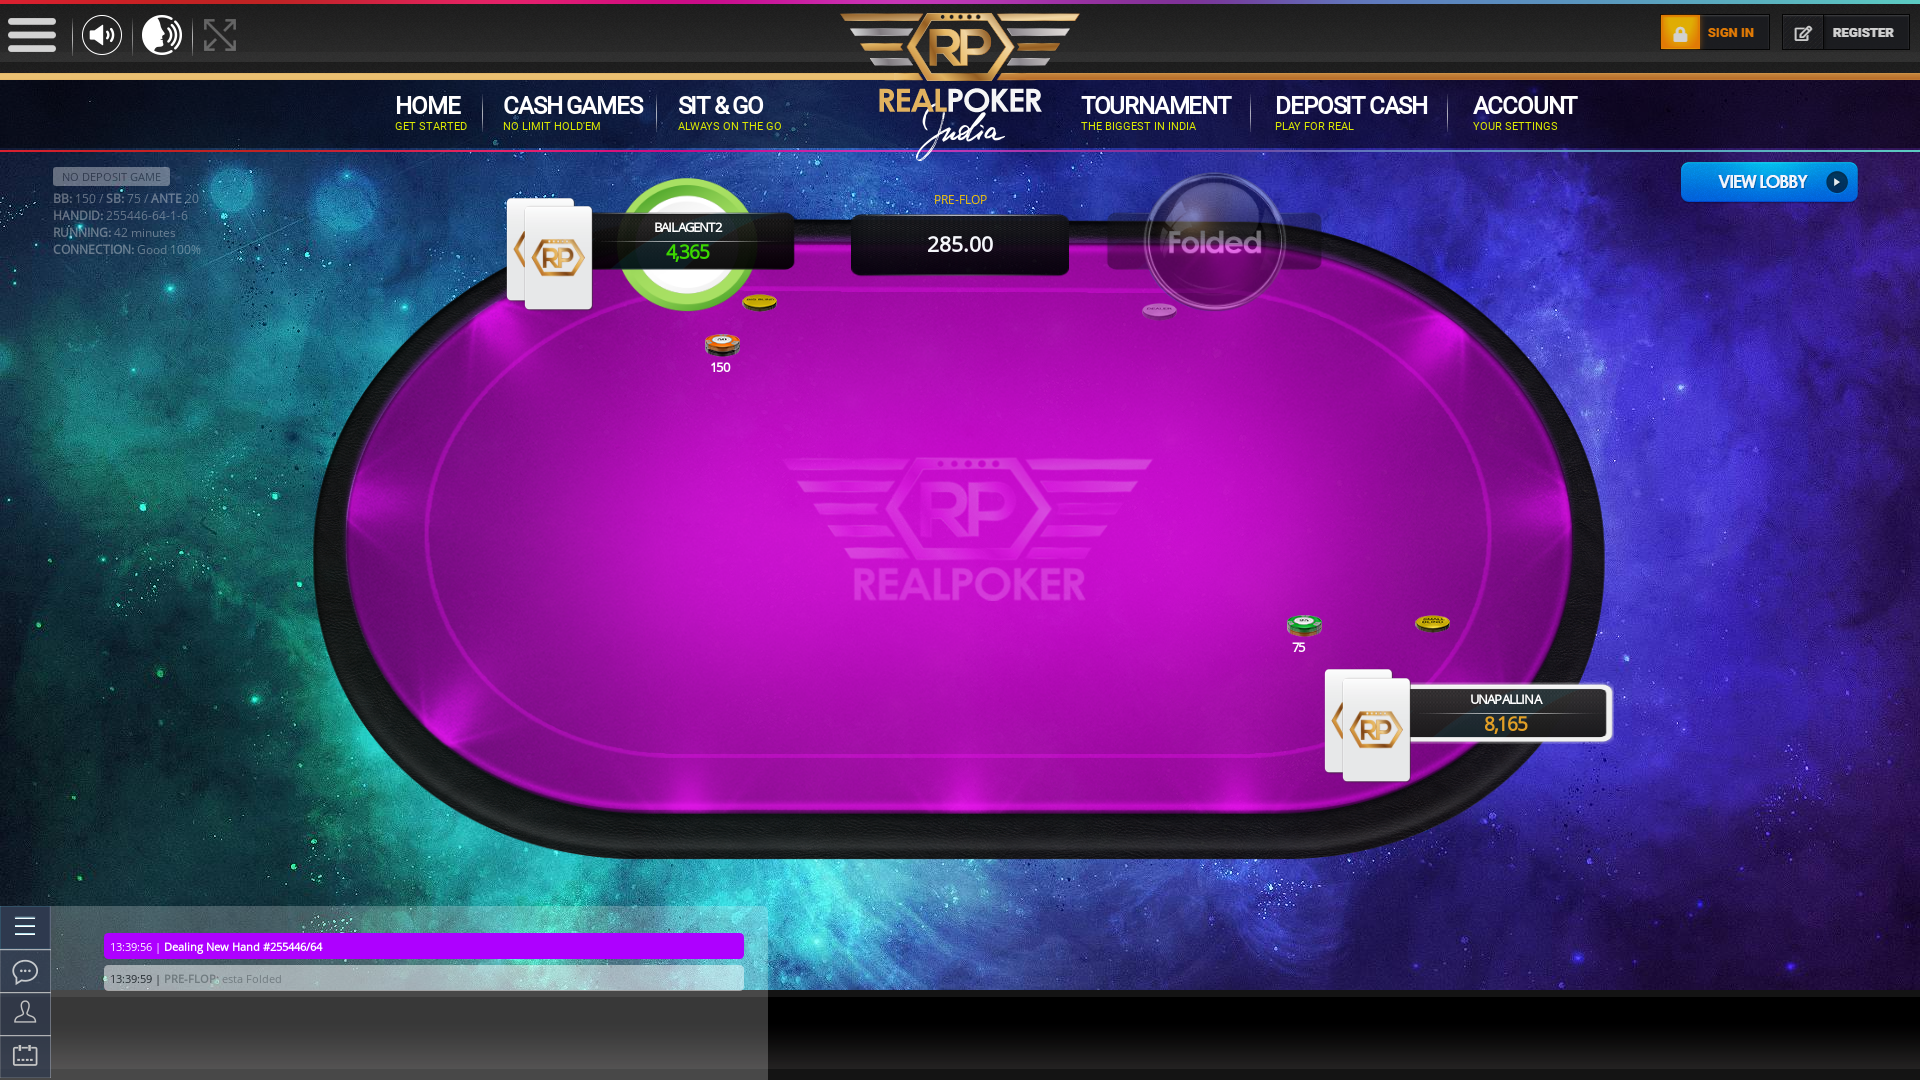 Real poker 10 player table in the 42nd minute of the match